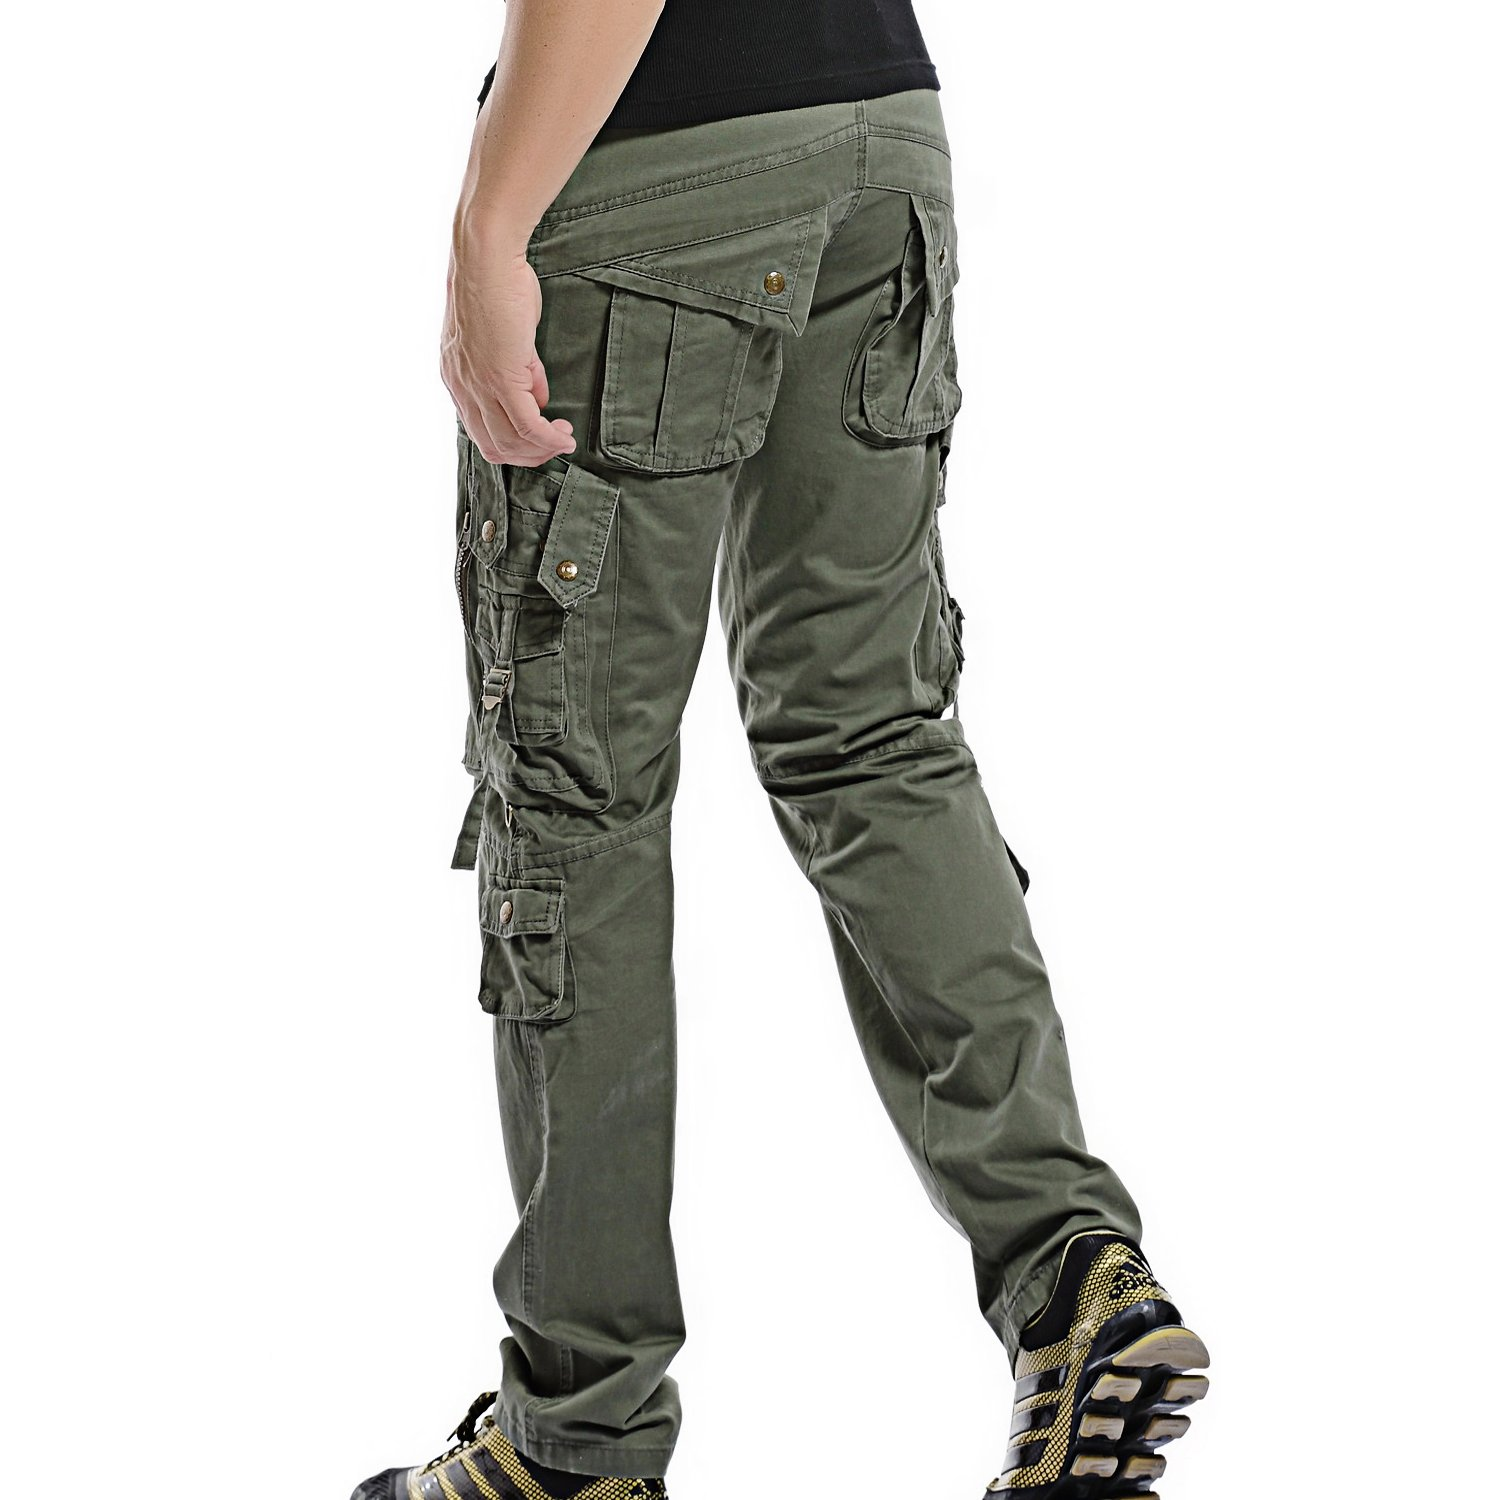 Mens Cargo Pants Work Trousers Cargo Combat Leisure Outdoor Cotton Overalls